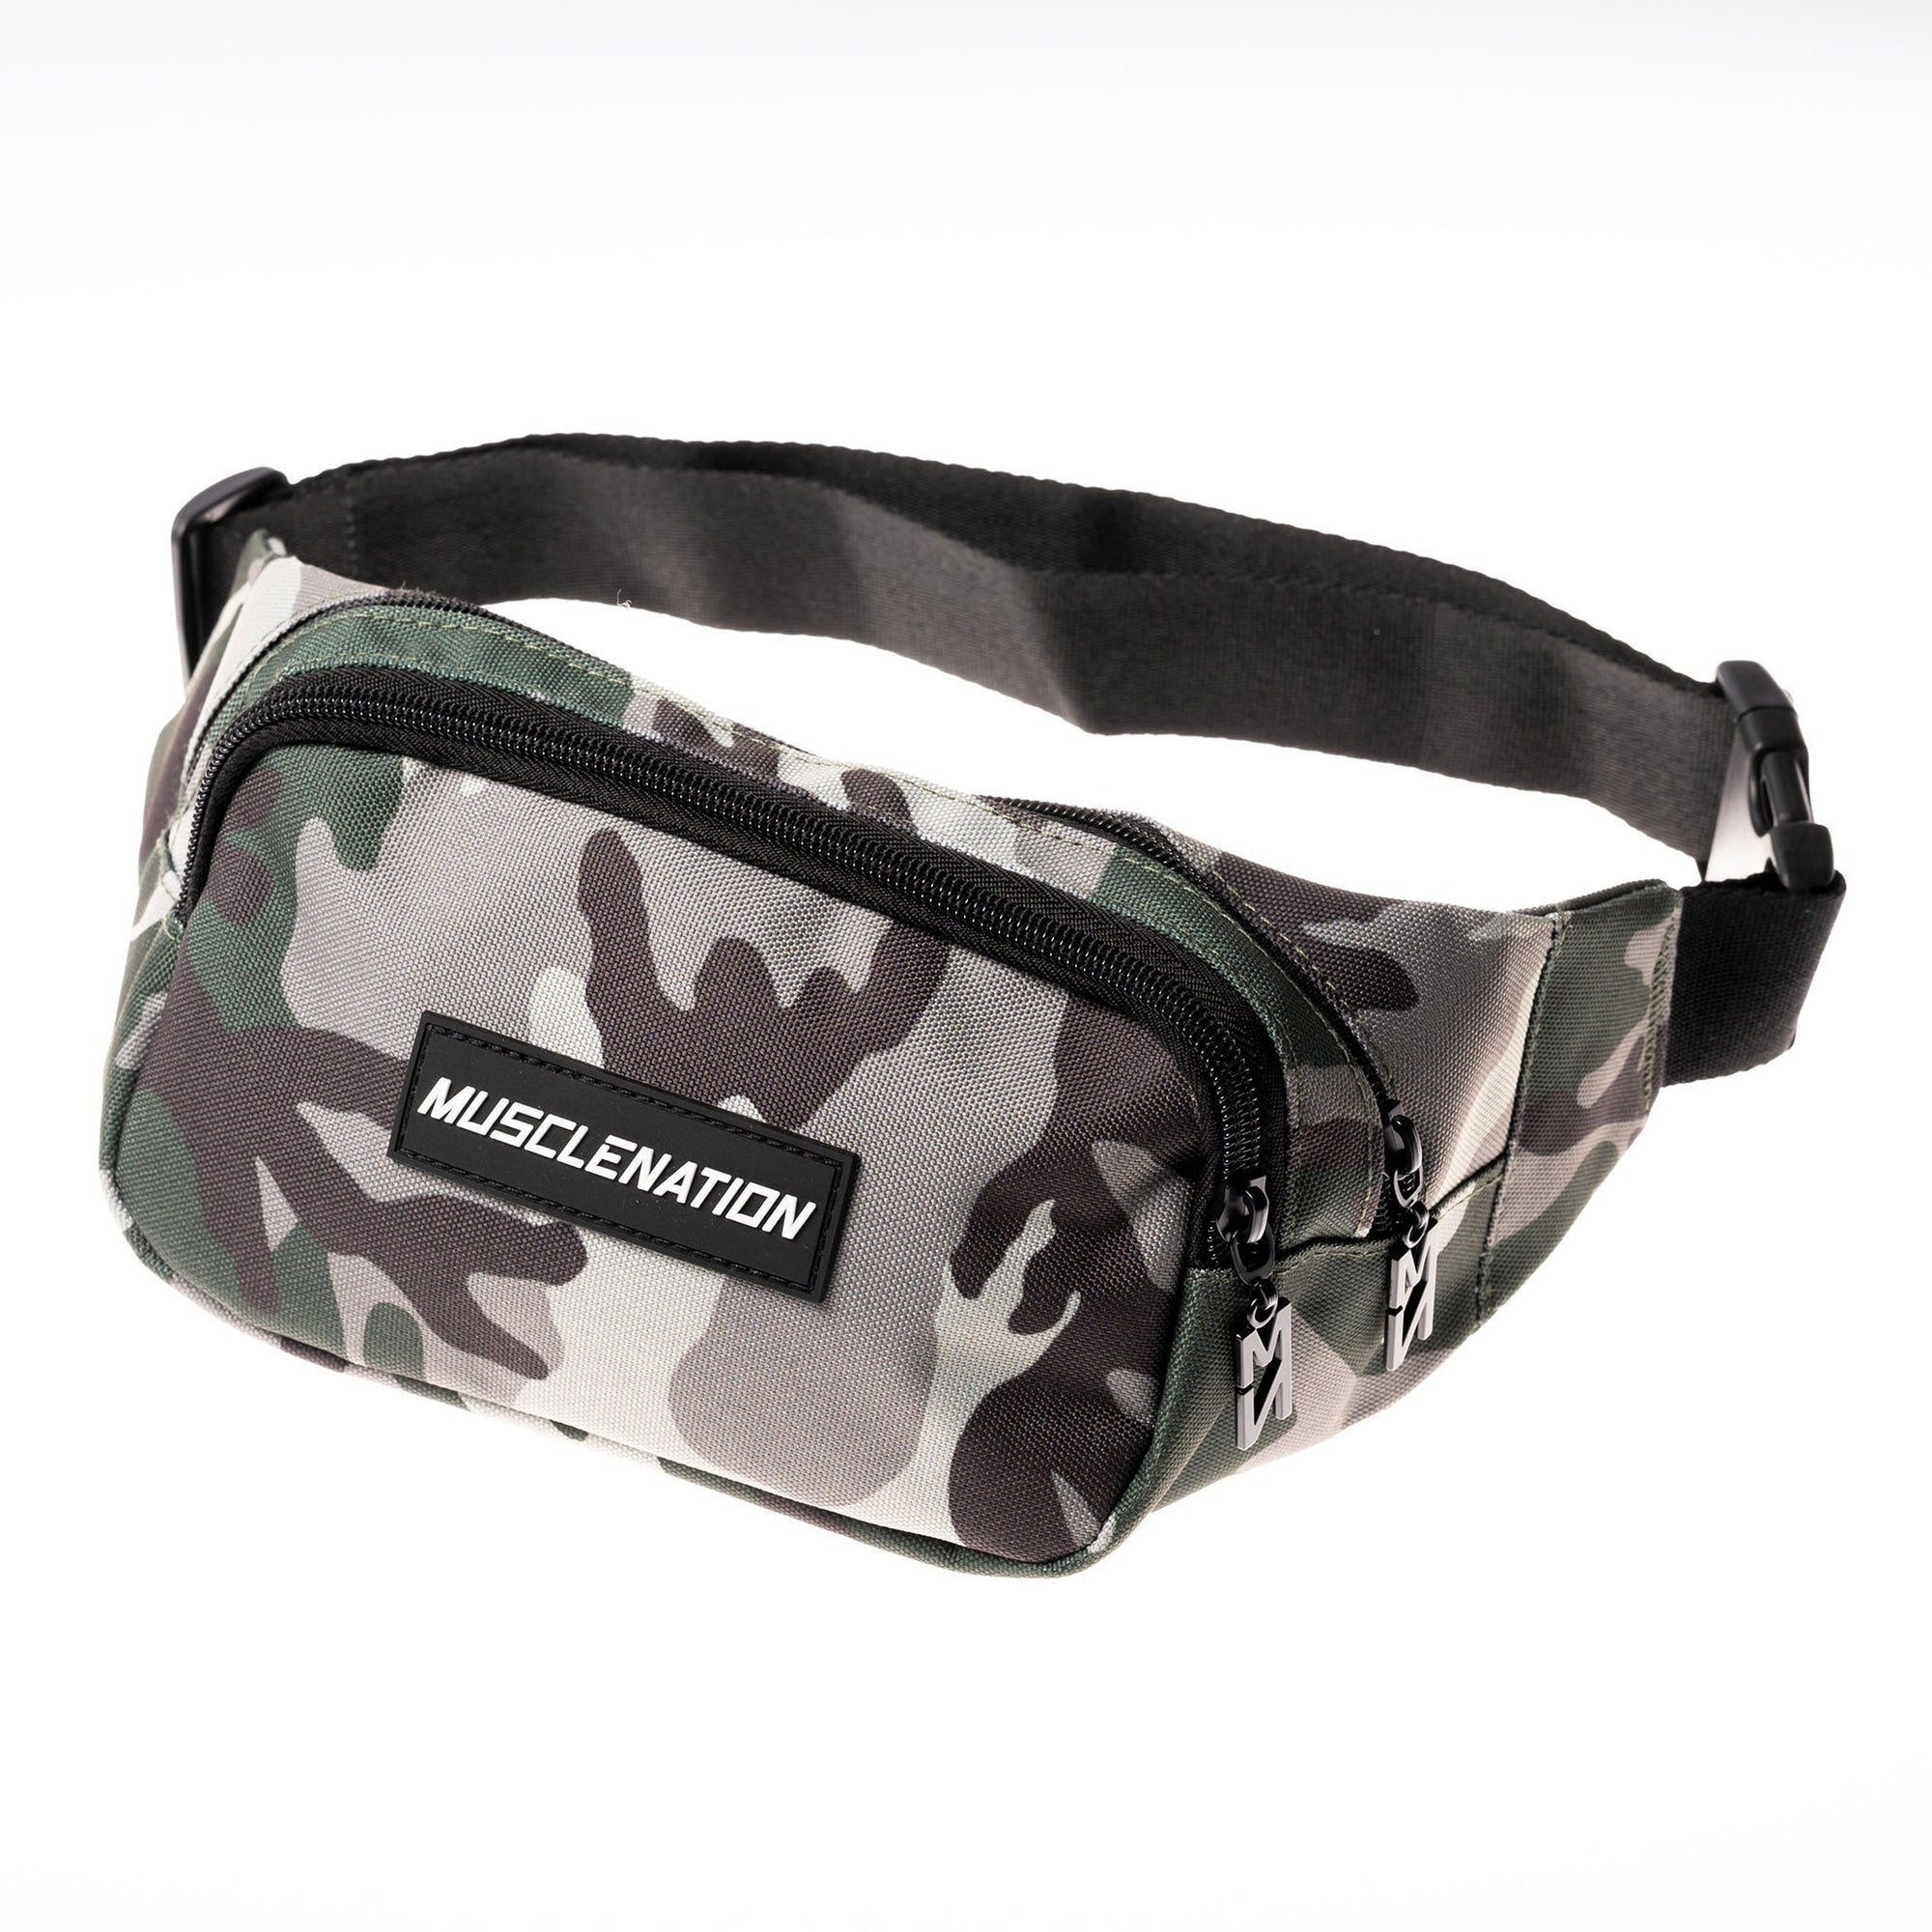 Muscle Nation Bum Bag - Camo